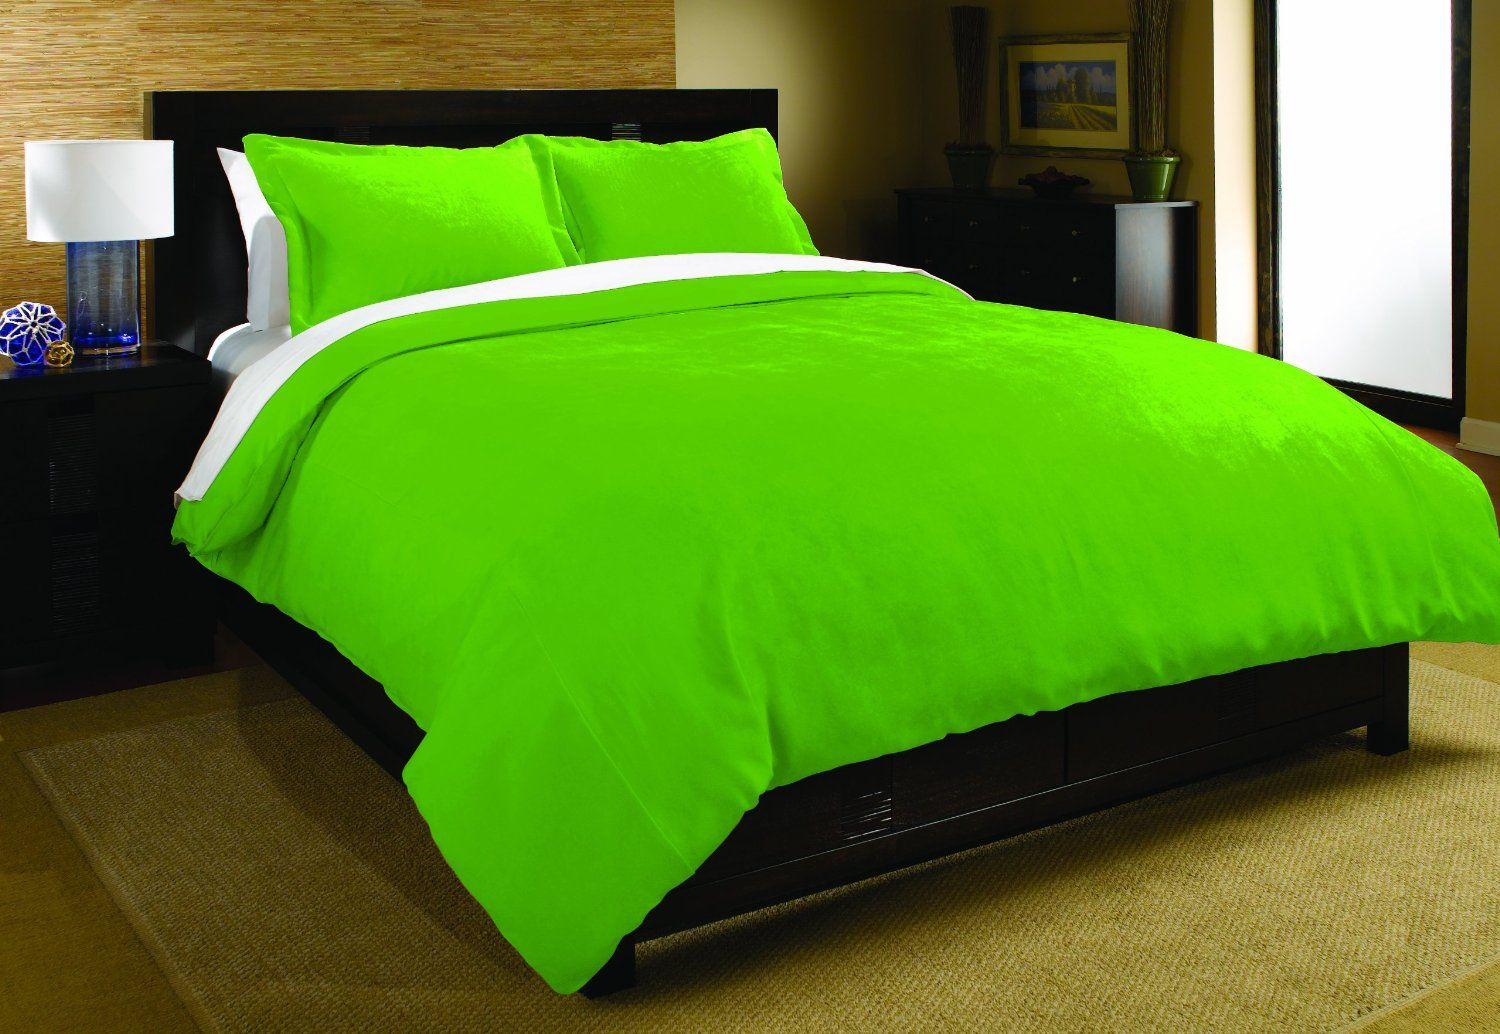 Solid Color Lime Green Bedding Set Twin Or Full Queen Size Microfiber Duvet Set Green Bedding Green Bedding Set Bedding Sets Lime green comforter sets queen